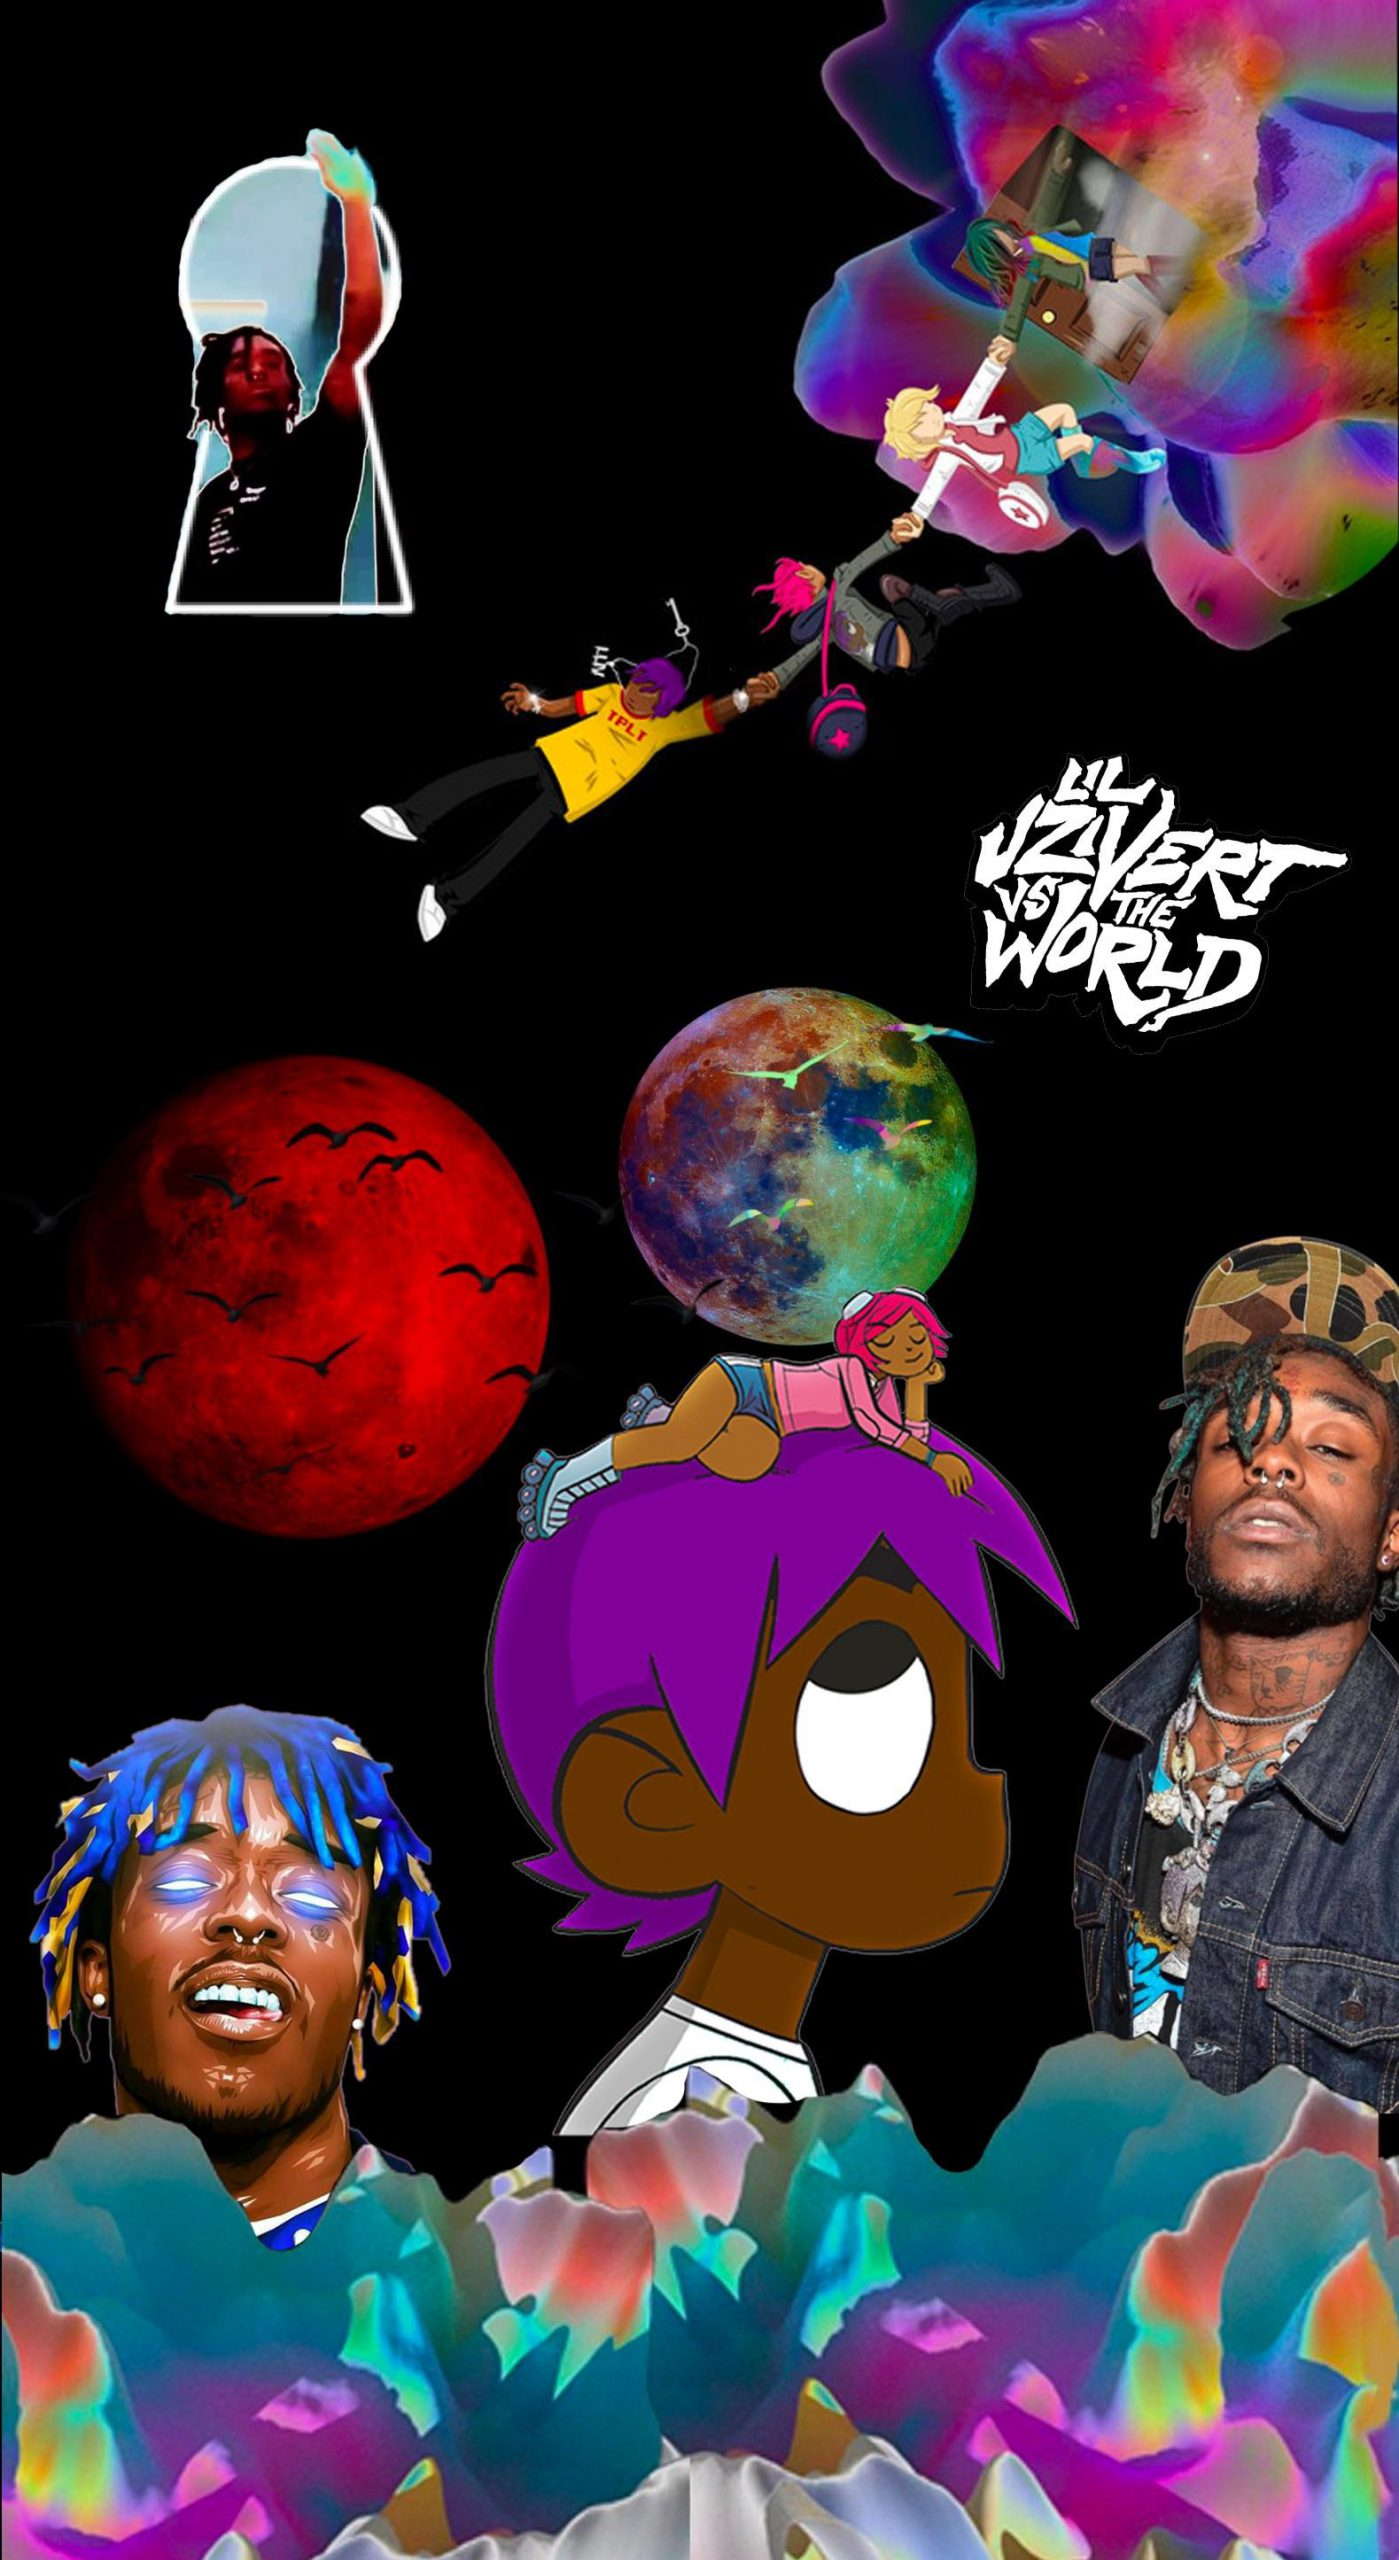 Luv Vs The World Iphone Wallpaper Kolpaper Awesome Free Hd Wallpapers Check out this fantastic collection of lil uzi vert wallpapers, with 36 lil uzi vert background images for your desktop, phone or tablet. luv vs the world iphone wallpaper